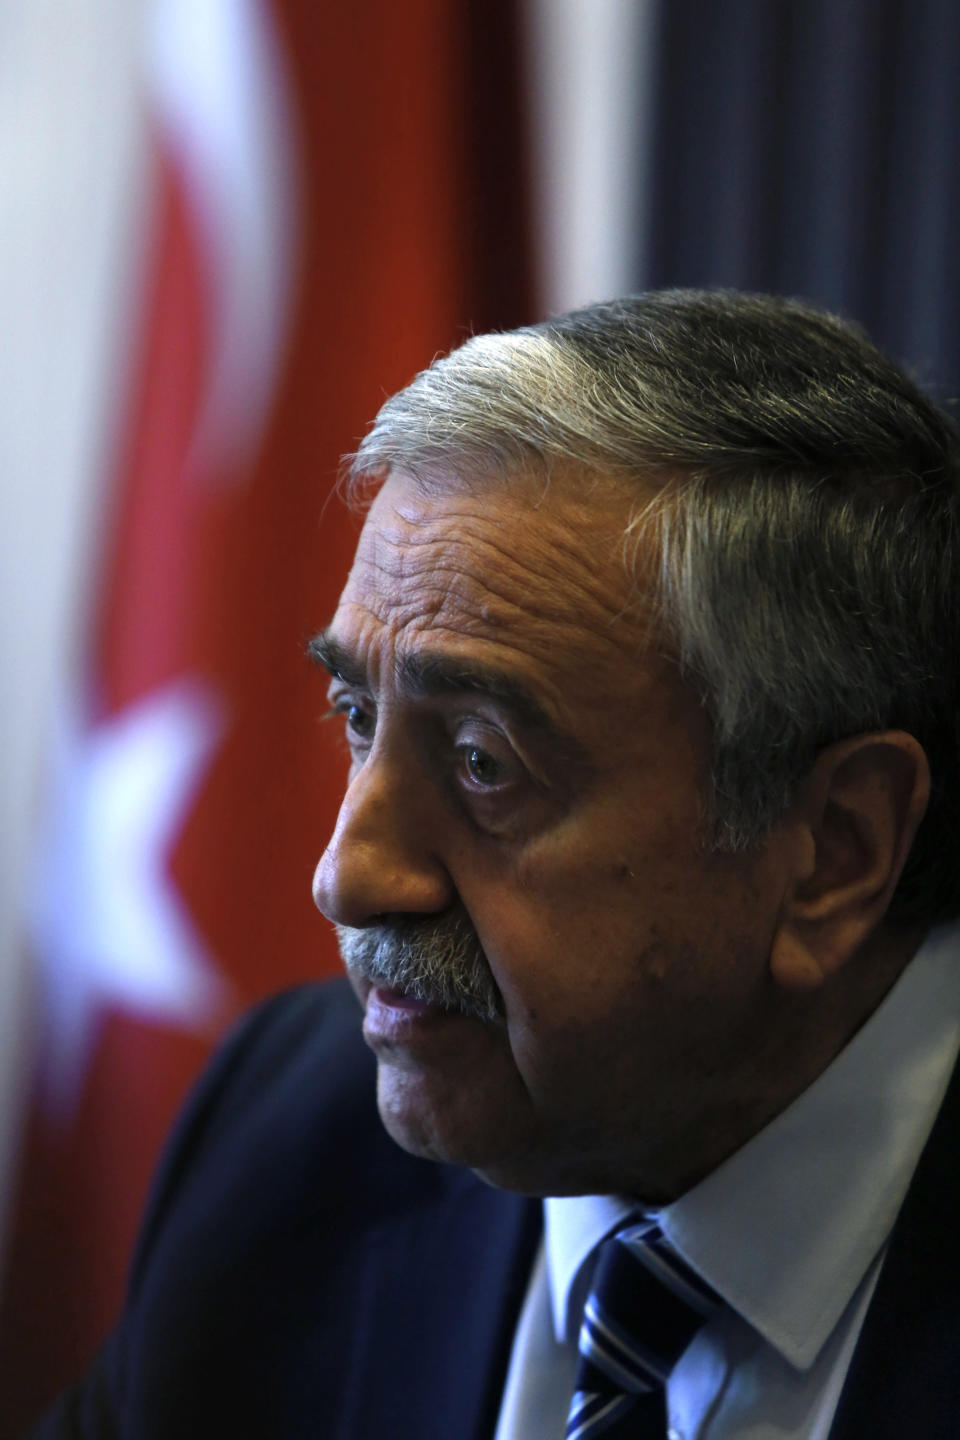 FILE - In this Monday, April 4, 2016 file photo, Turkish Cypriot leader Mustafa Akinci sits in his office during an interview for the Associated Press in the Turkish breakaway north part of the divided capital Nicosia in this ethnically Mediterranean island of Cyprus. Turkish Cypriots will vote Sunday Oct. 11, 2020 to choose a leader who will explore, with rival Greek Cypriots, whether there's enough common ground left for a deal to end the island's decades of ethnic division. (AP Photo/Petros Karadjias, File)